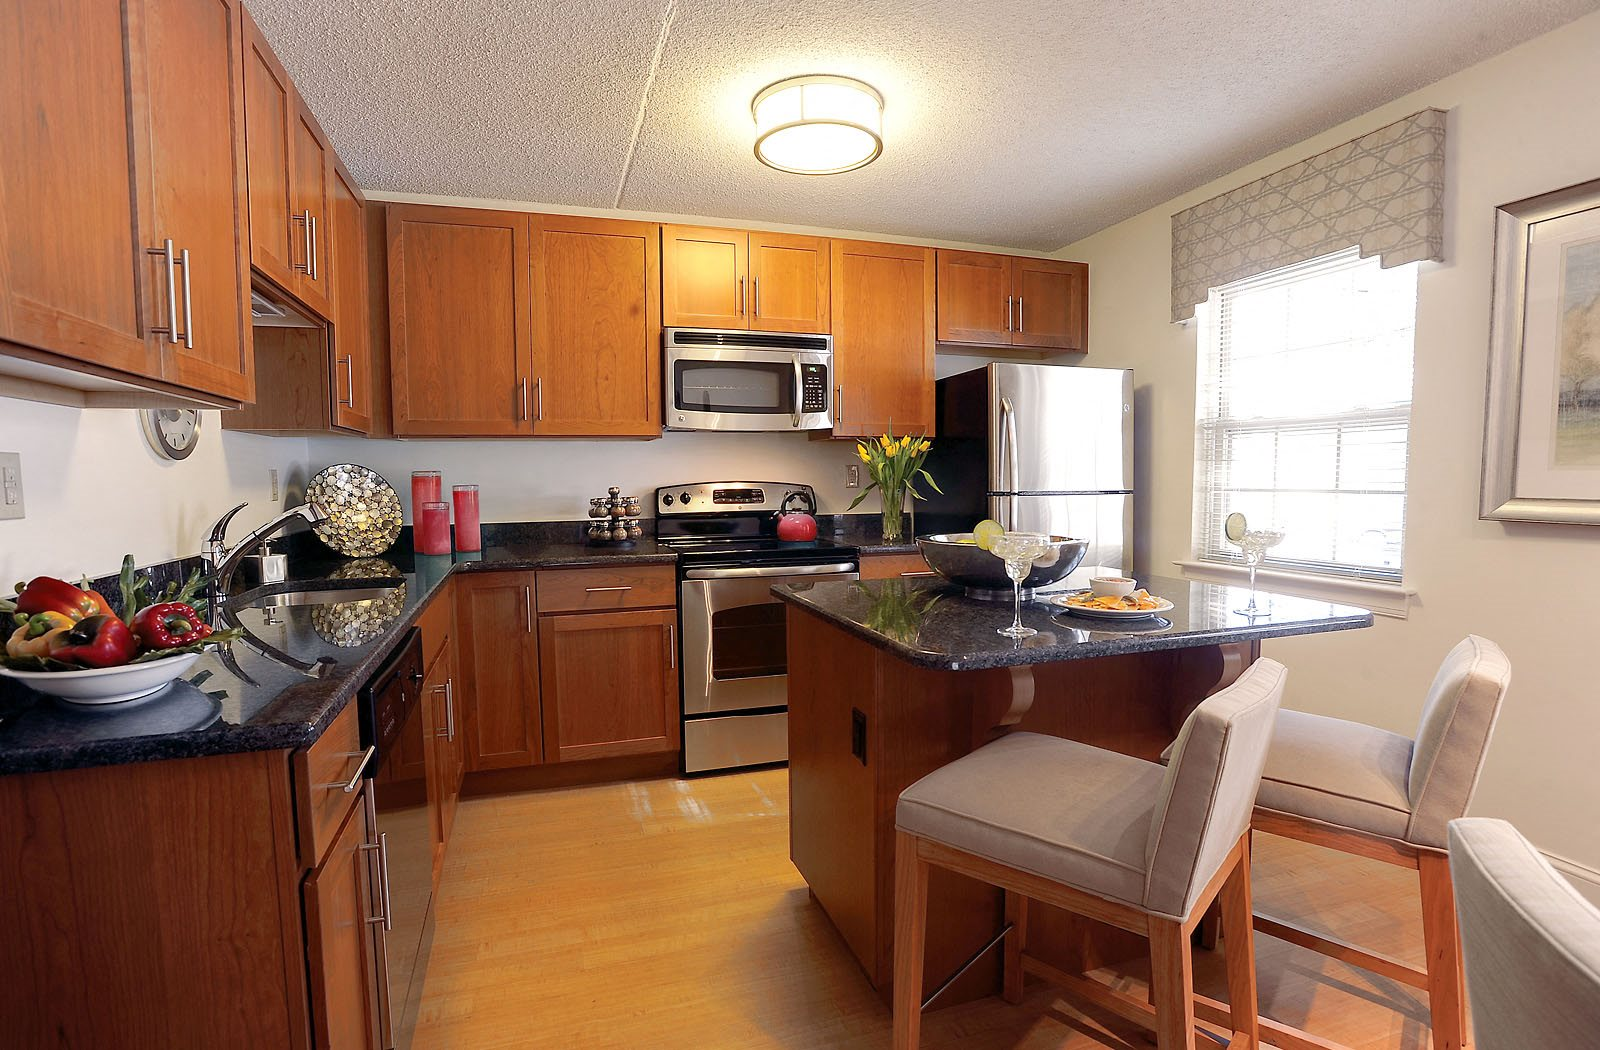 Apartment in West Chester PA   Photos of New Kent Apartments